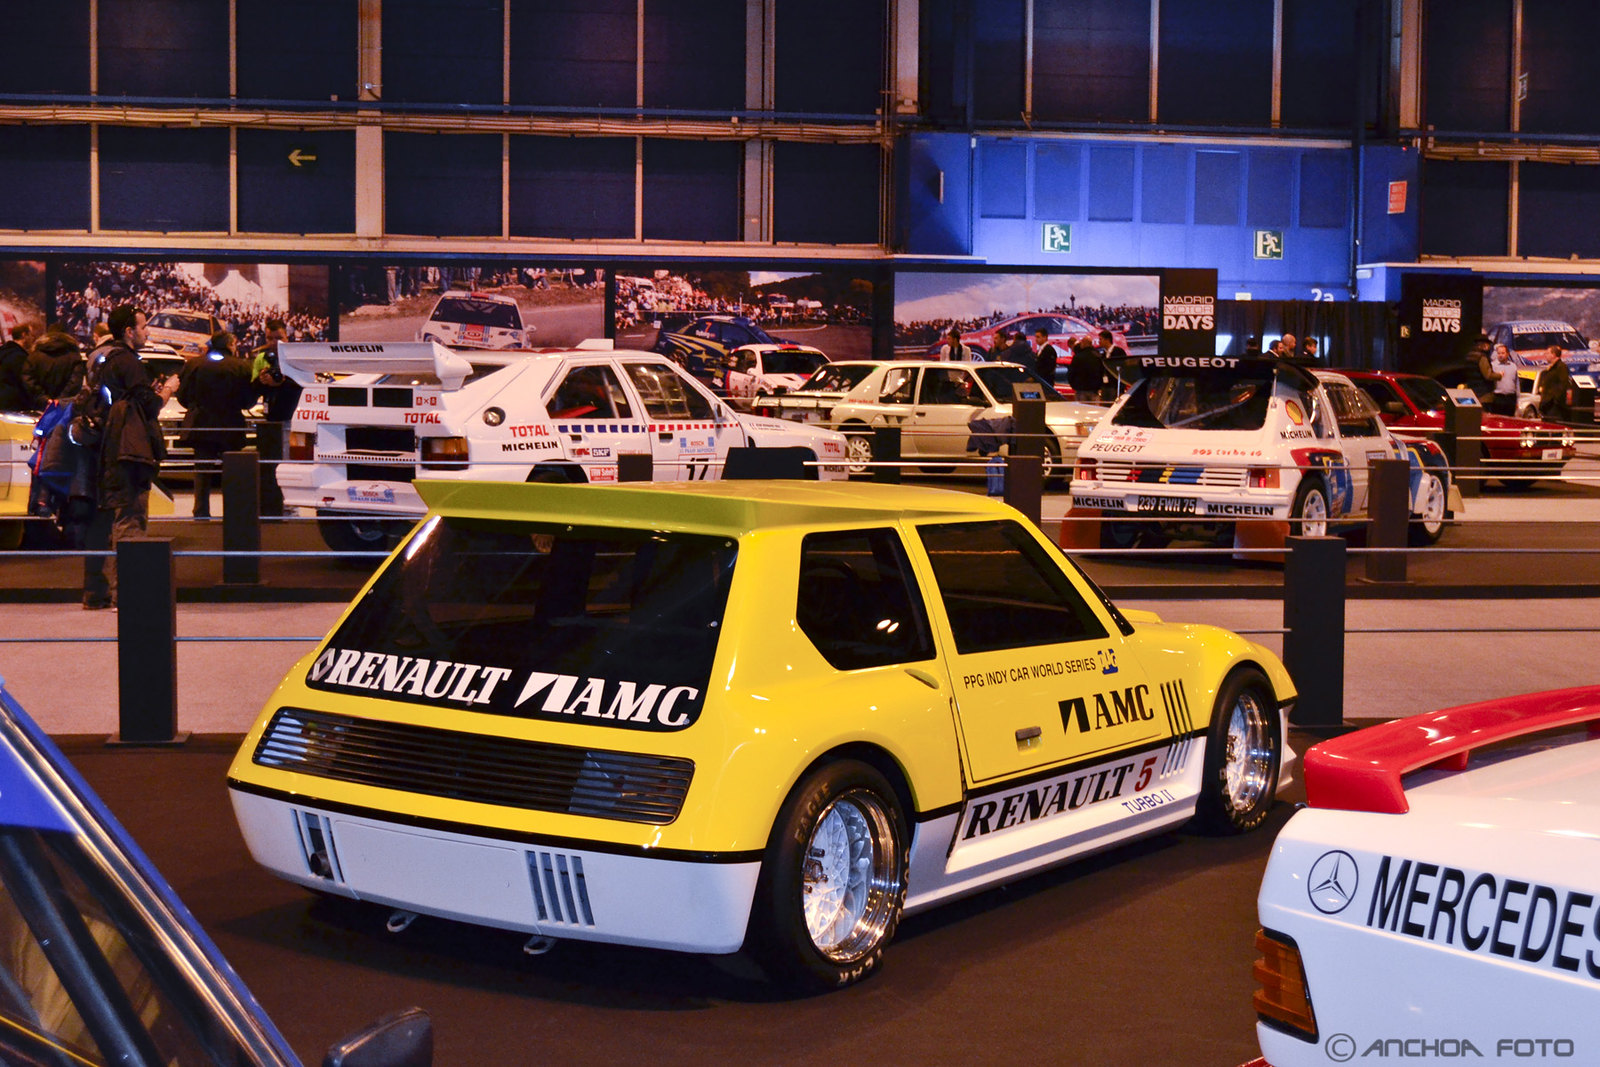 Renault 1982 5 Turbo II (PPG Indy Series Pace Car) 4T 1397cc 160cv 02